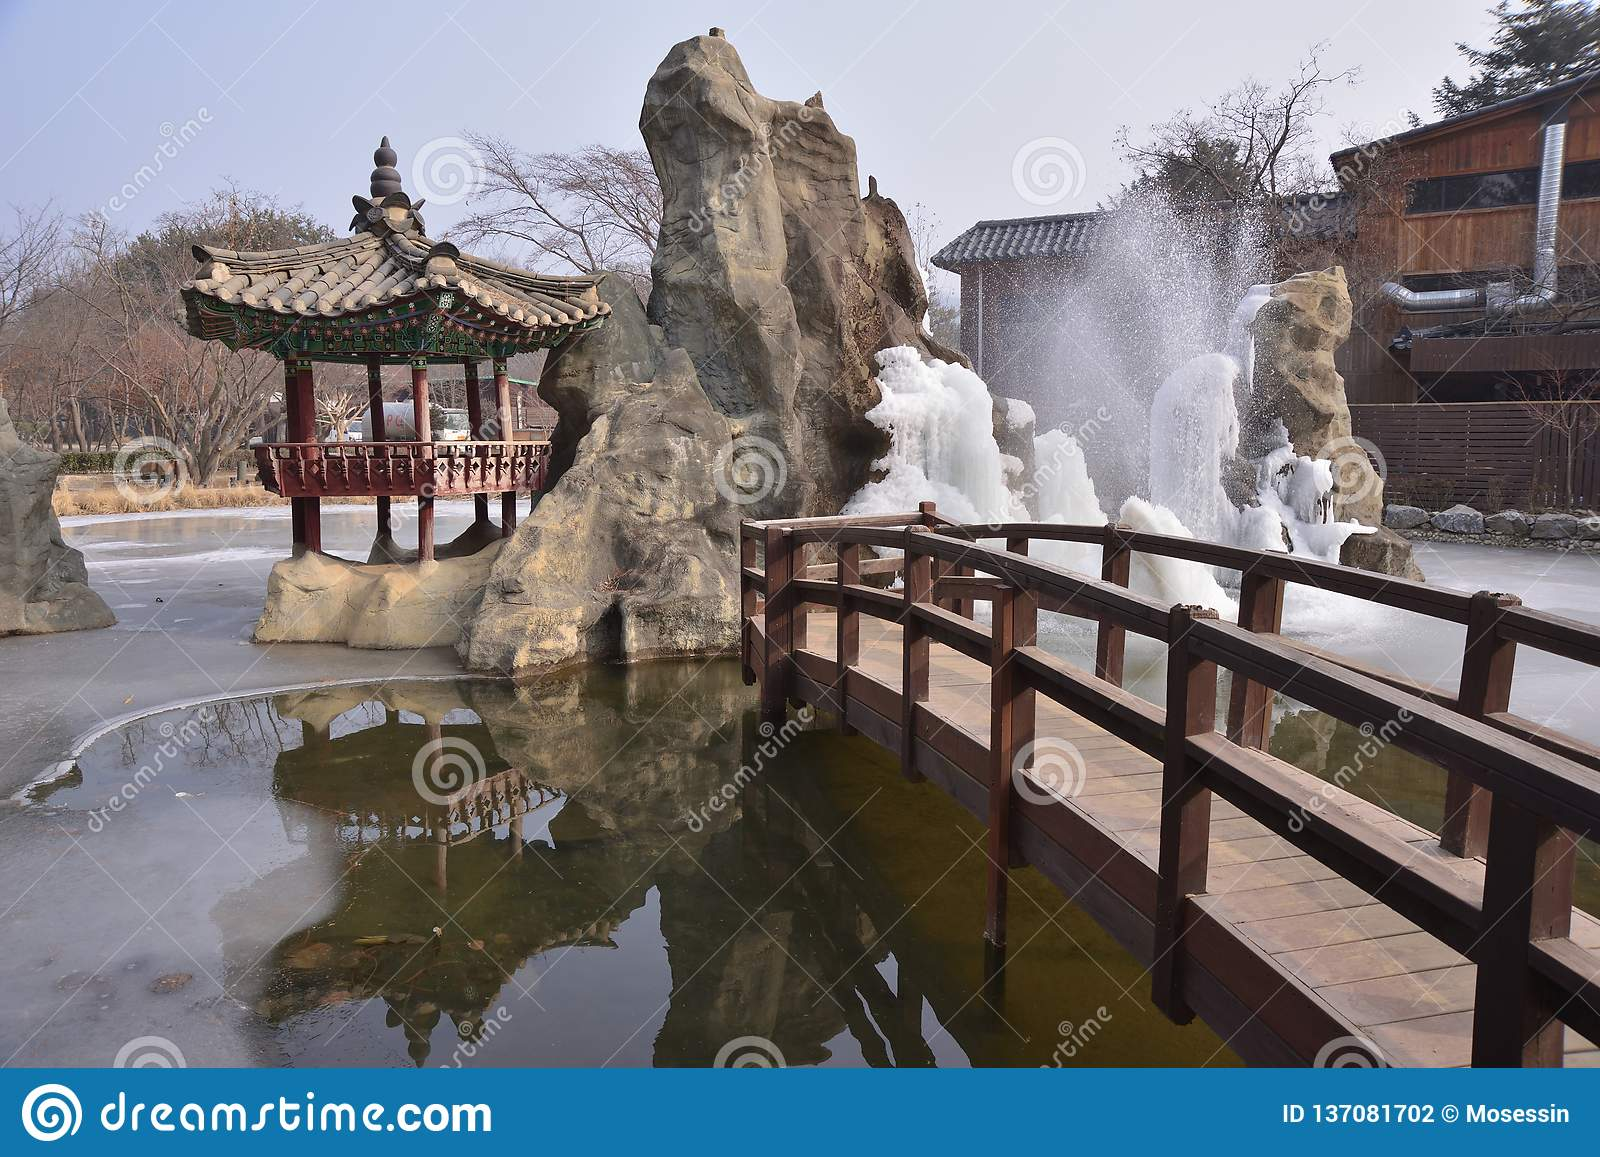 Frozen Fountain Korea Nami Island Ice Water Frozen Fountain Park Stock Photo